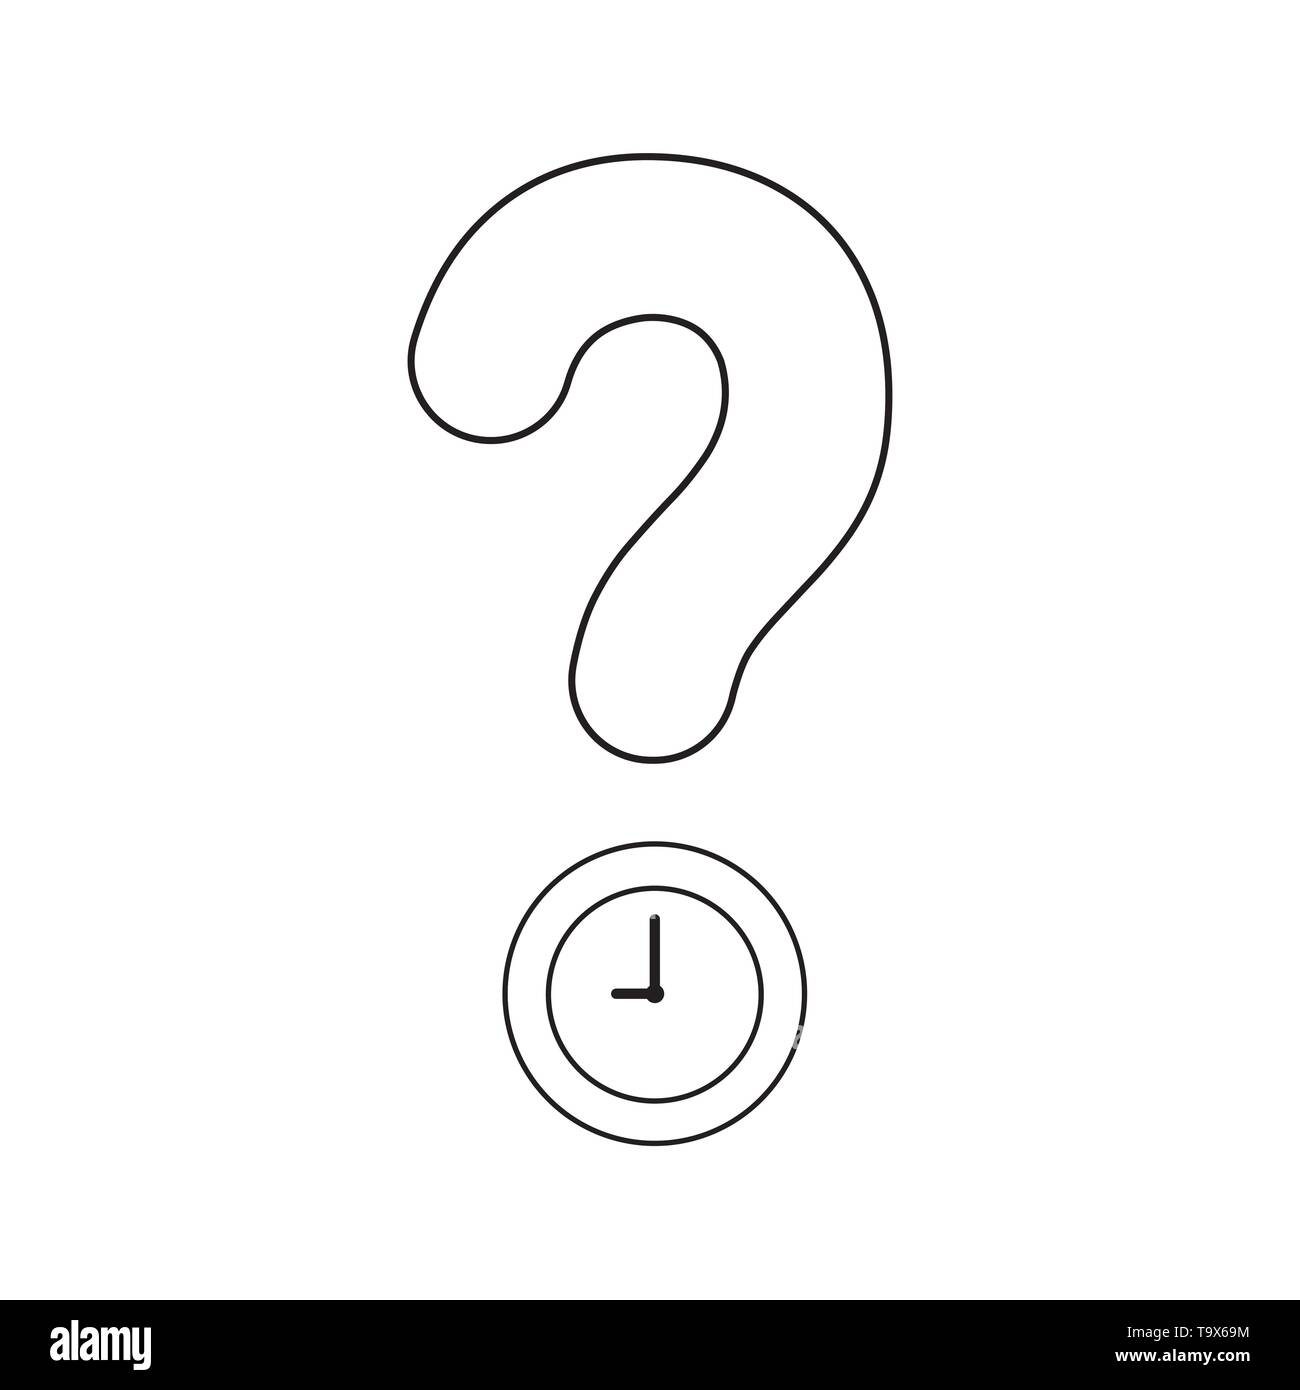 Vector icon concept of question mark with clock time. Black outlines. - Stock Image